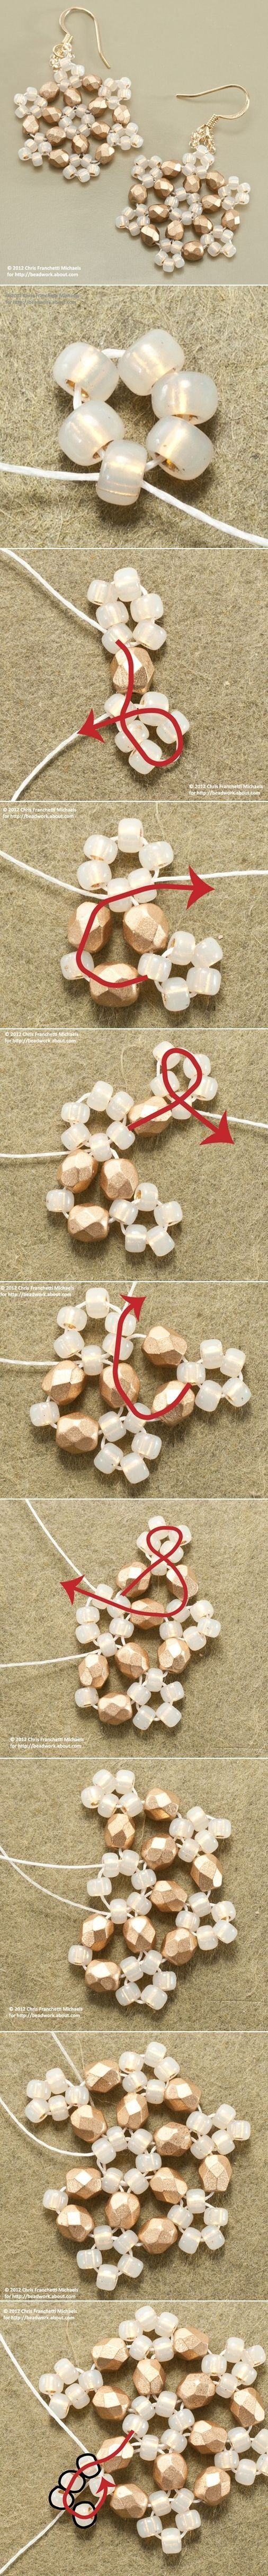 Snowflake Earrings DIY Jewelry Earrings | #DIY